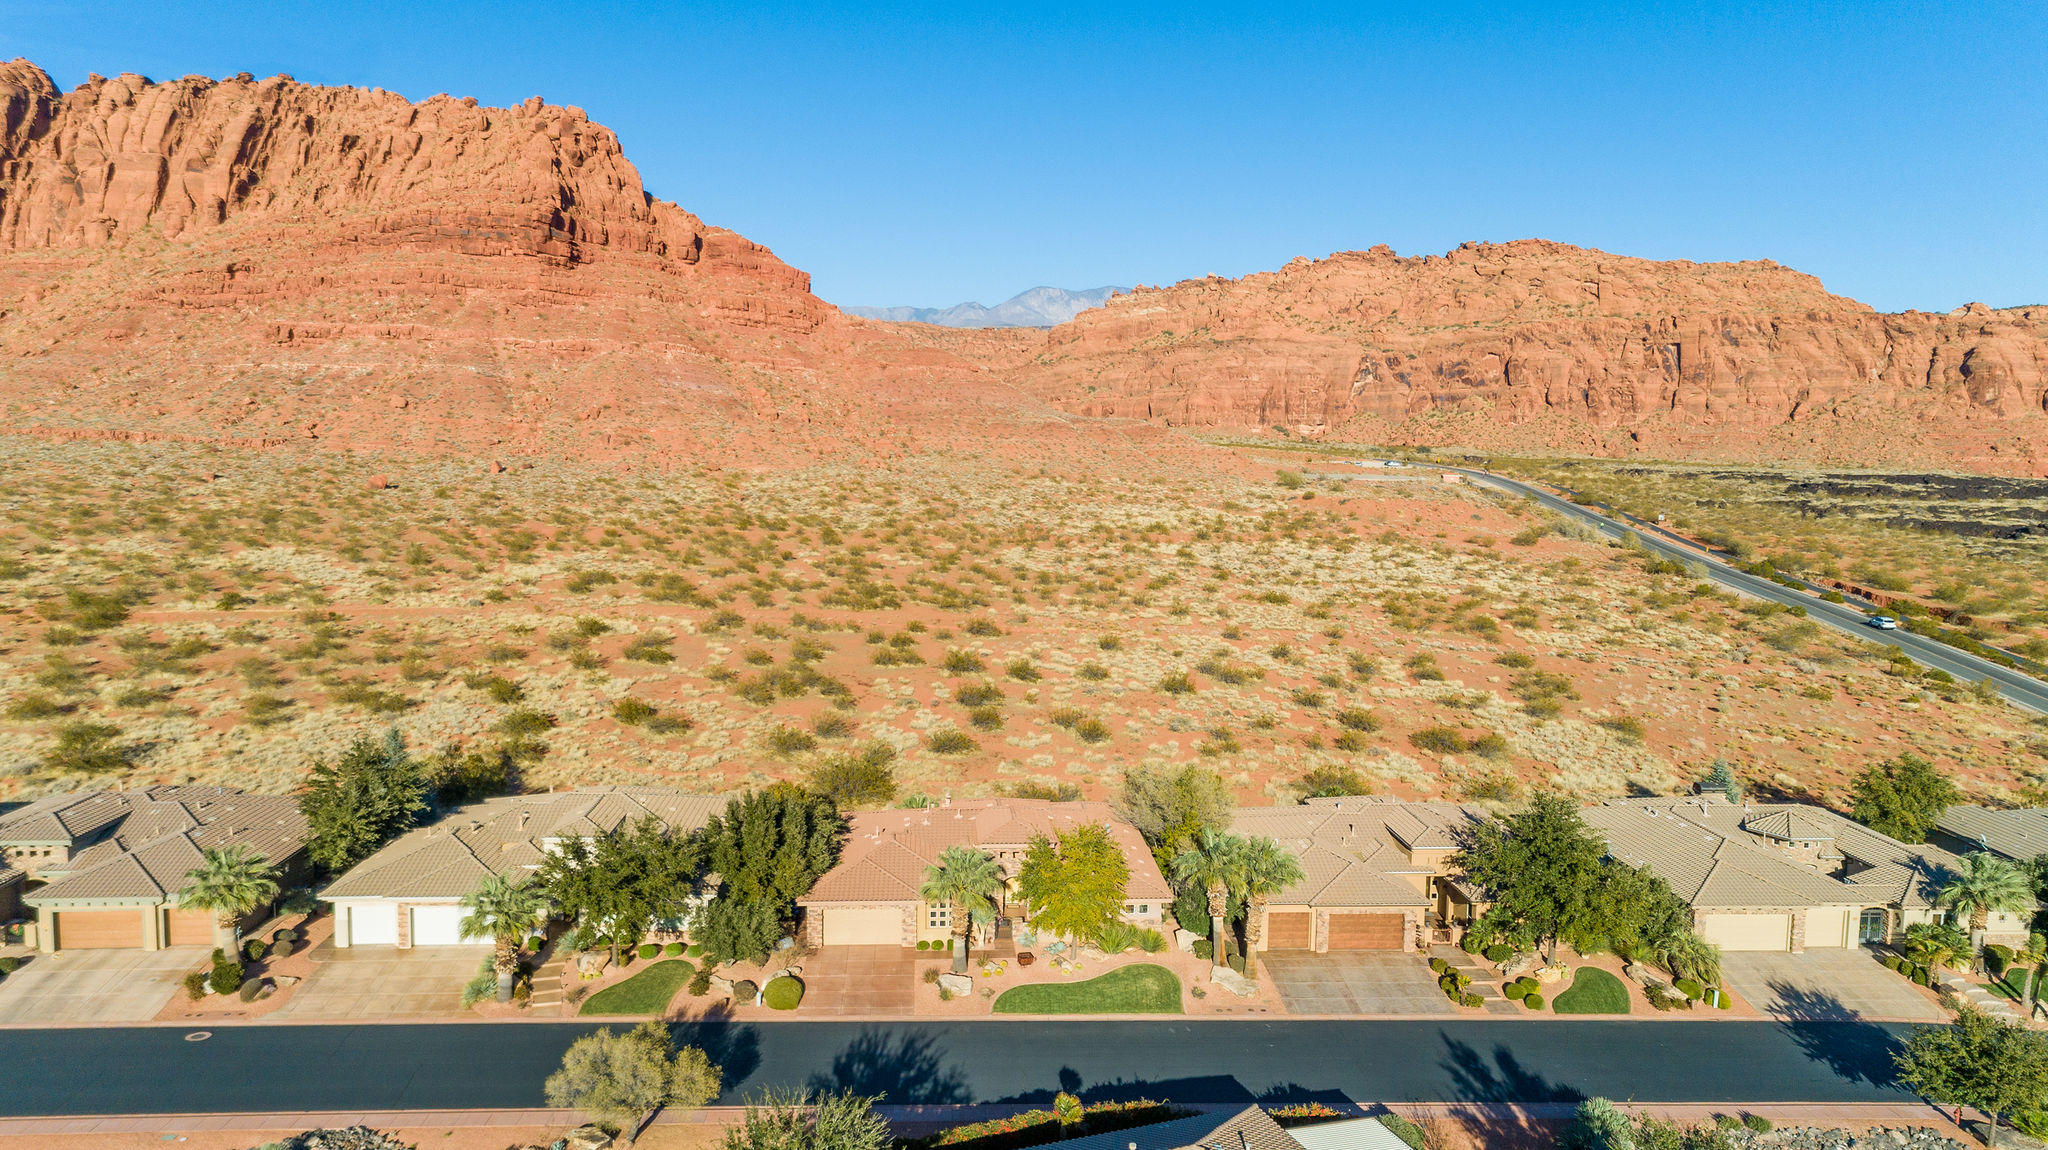 92104 340 Snow Canyon DR Ivins UT